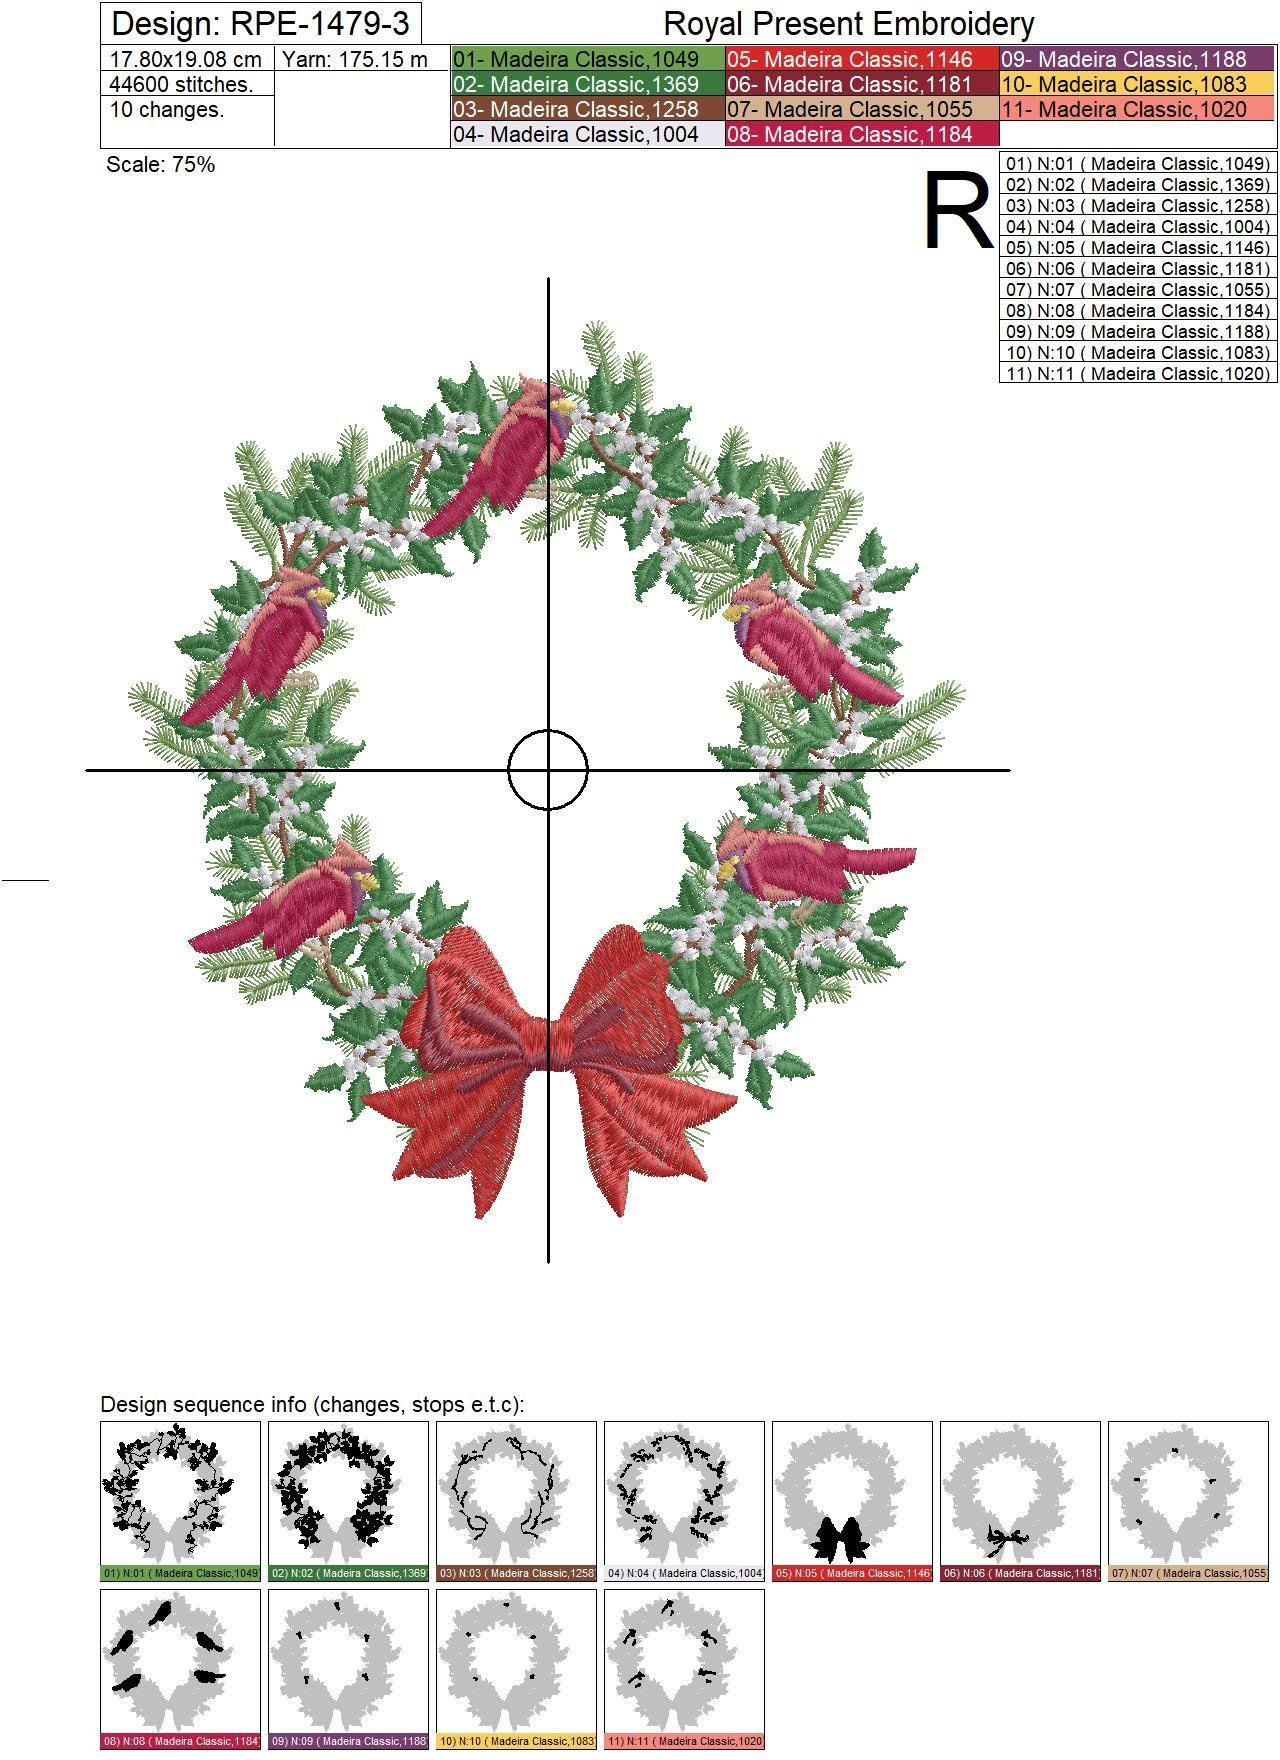 Christmas Festive Wreath Machine Embroidery Design - 7 sizes